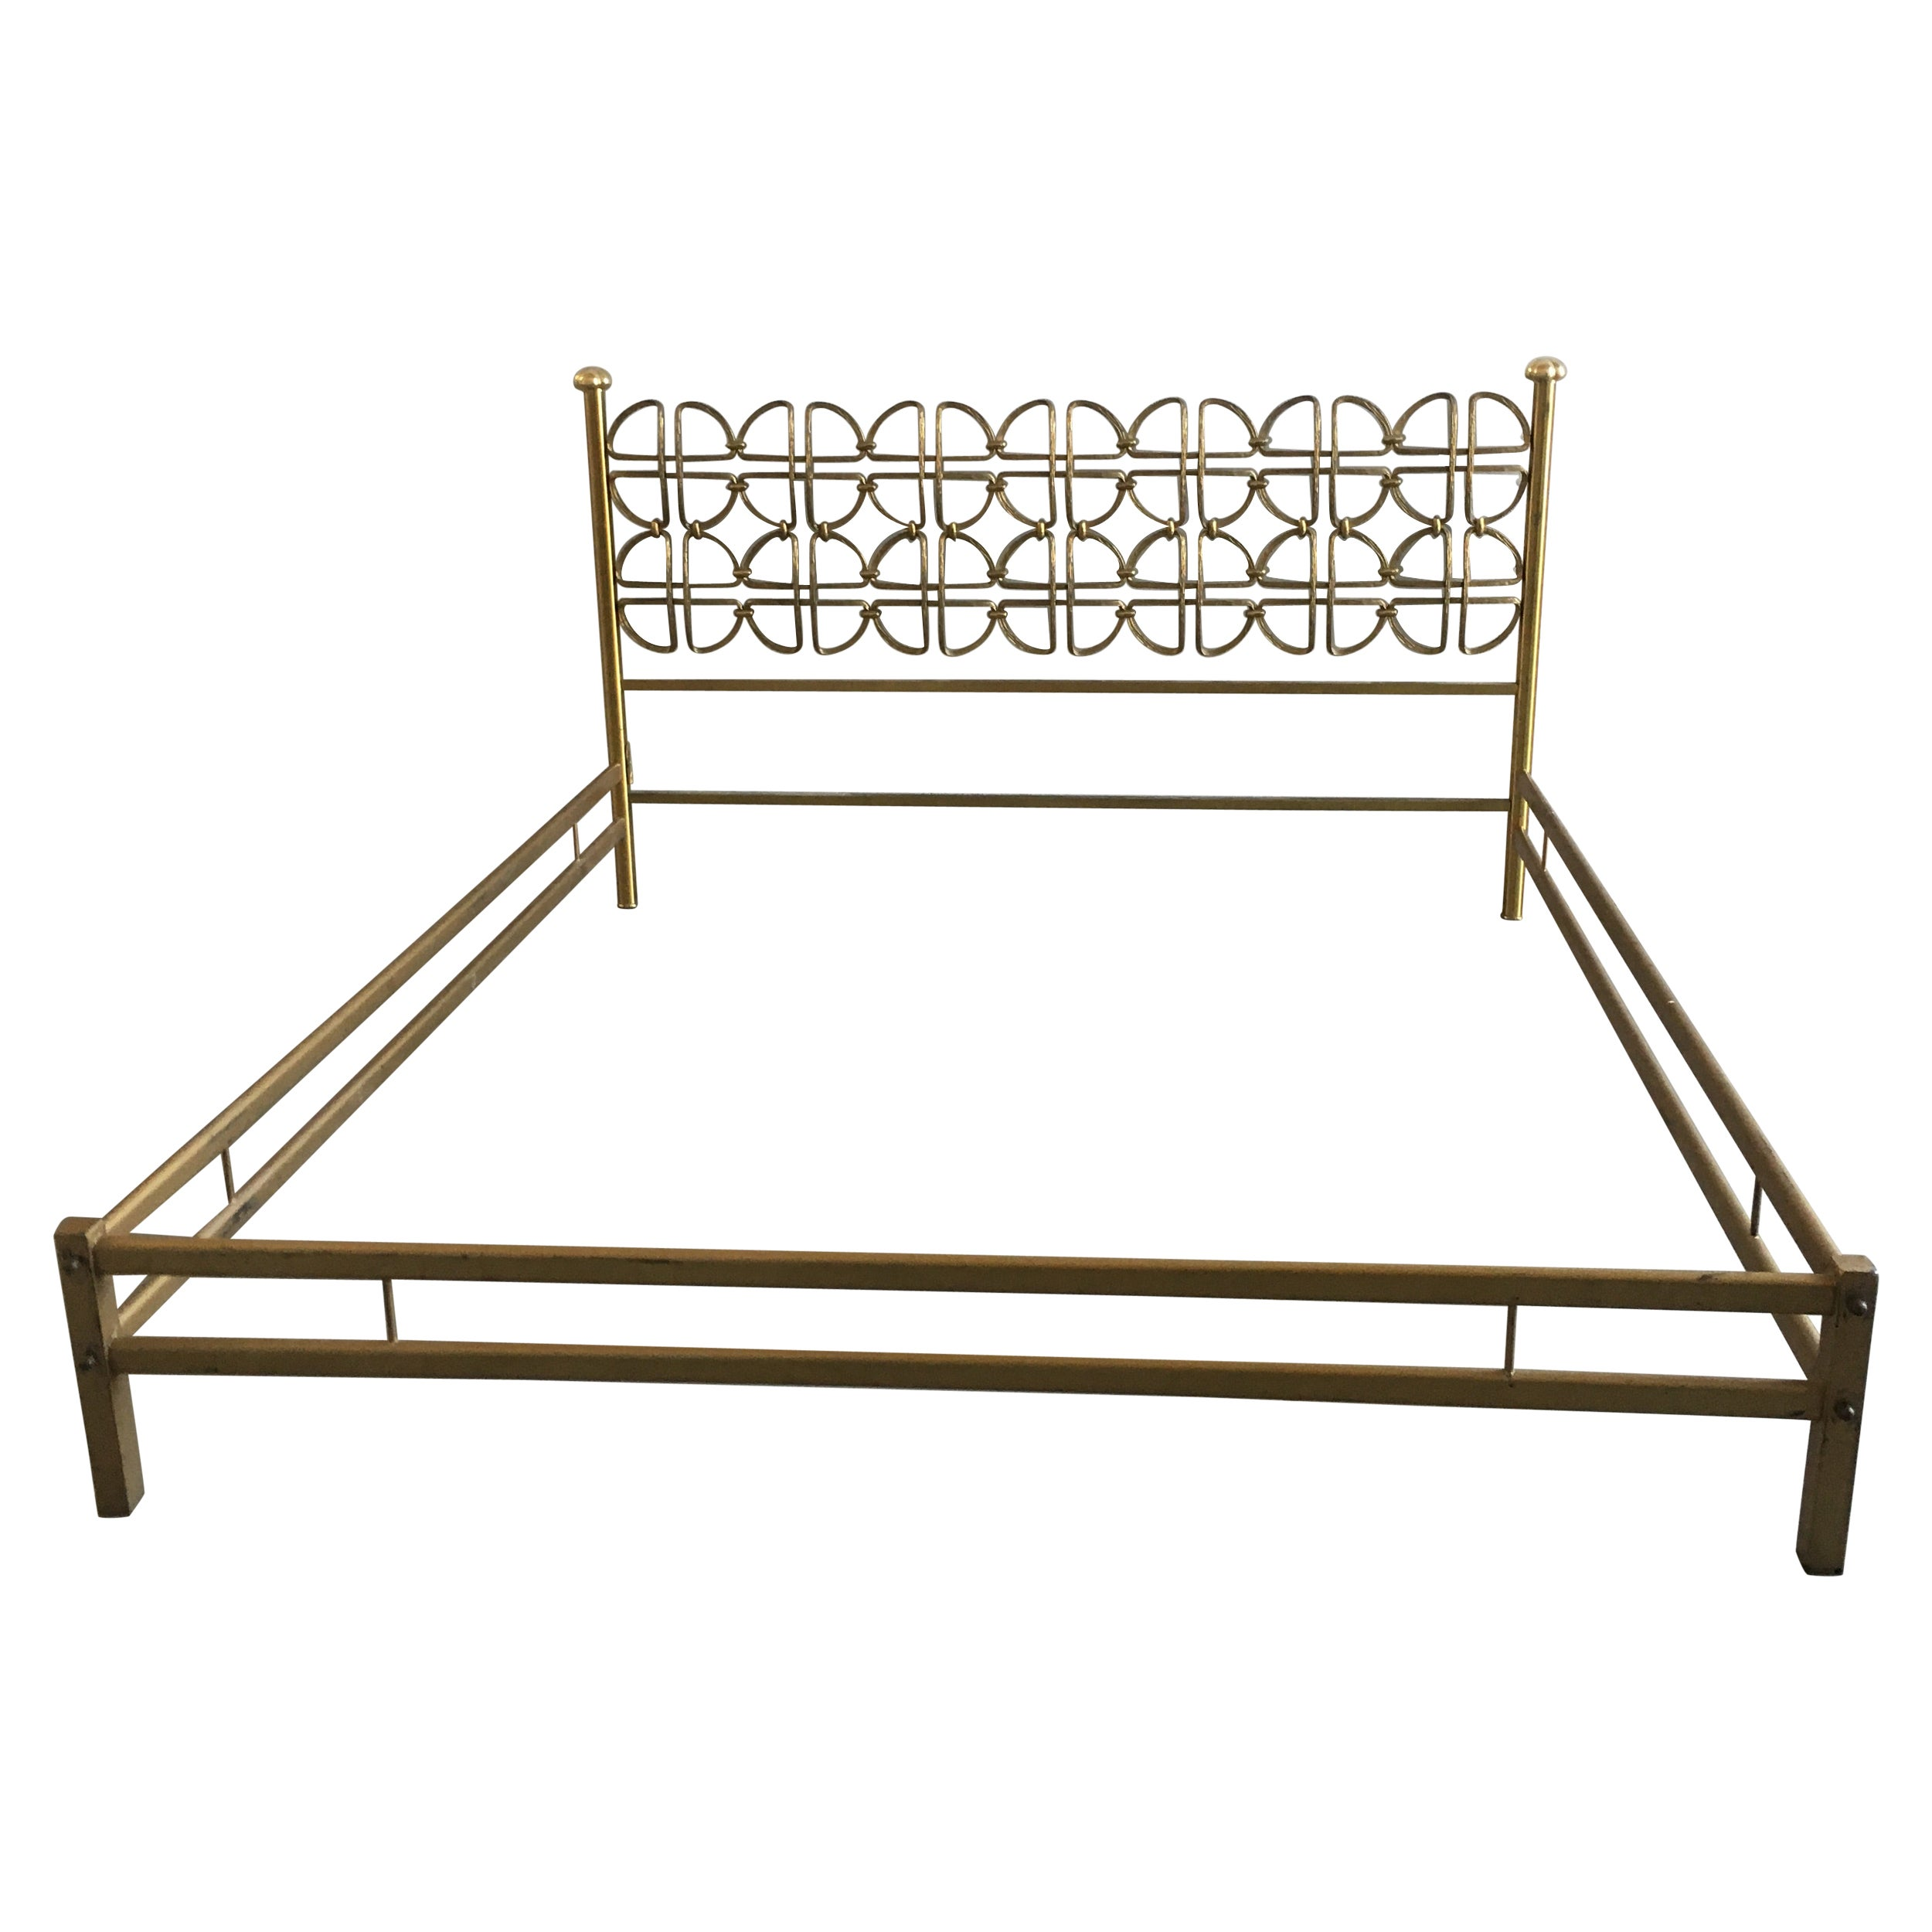 Mid-Century Modern Italian Solid Brass Queen Size Bed Signed A. Cellini, 1970s